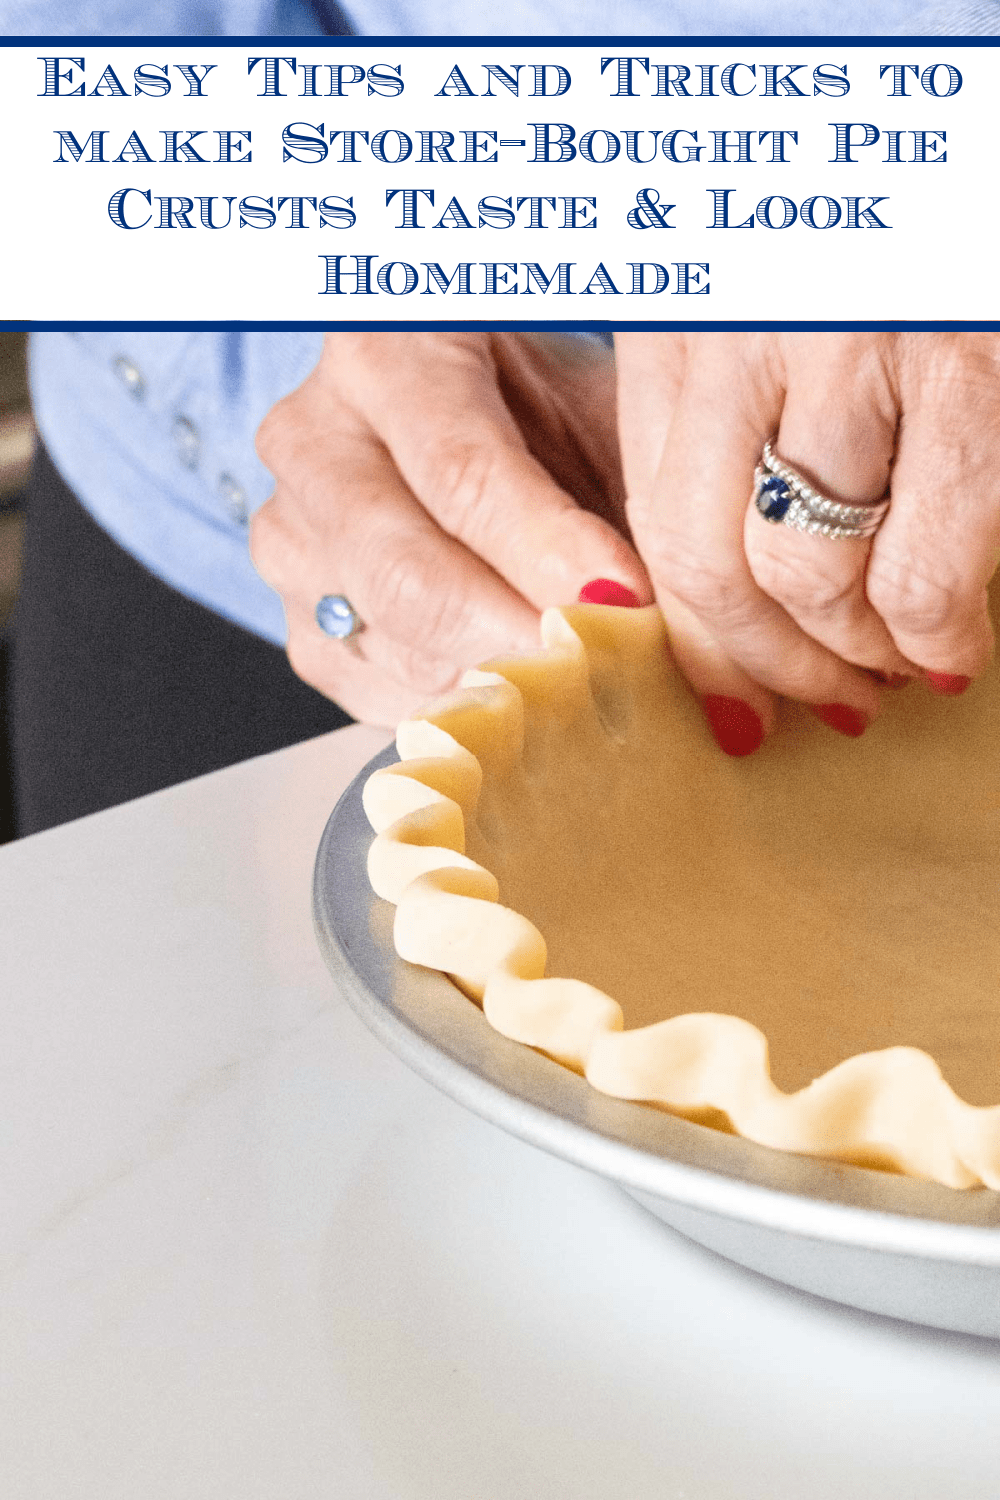 Homemade Store-Bought Pie Crusts